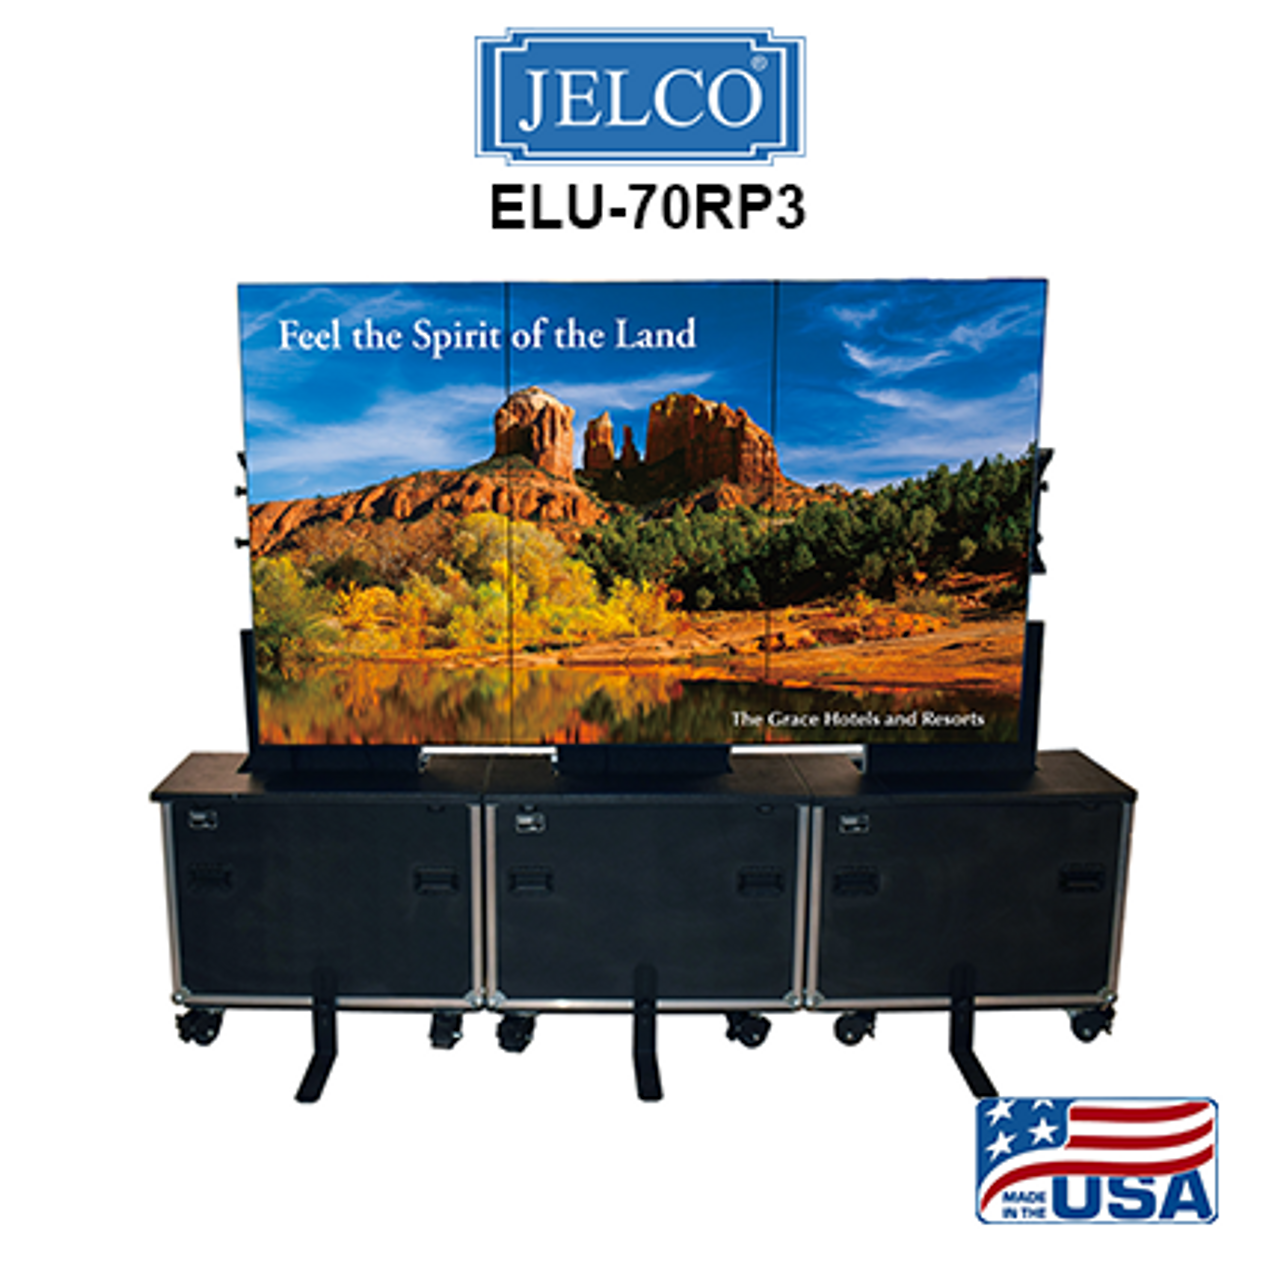 ELU-70RP3: RotoLift™ 3x1 Video Wall Lift Case for Sharp PN-V701